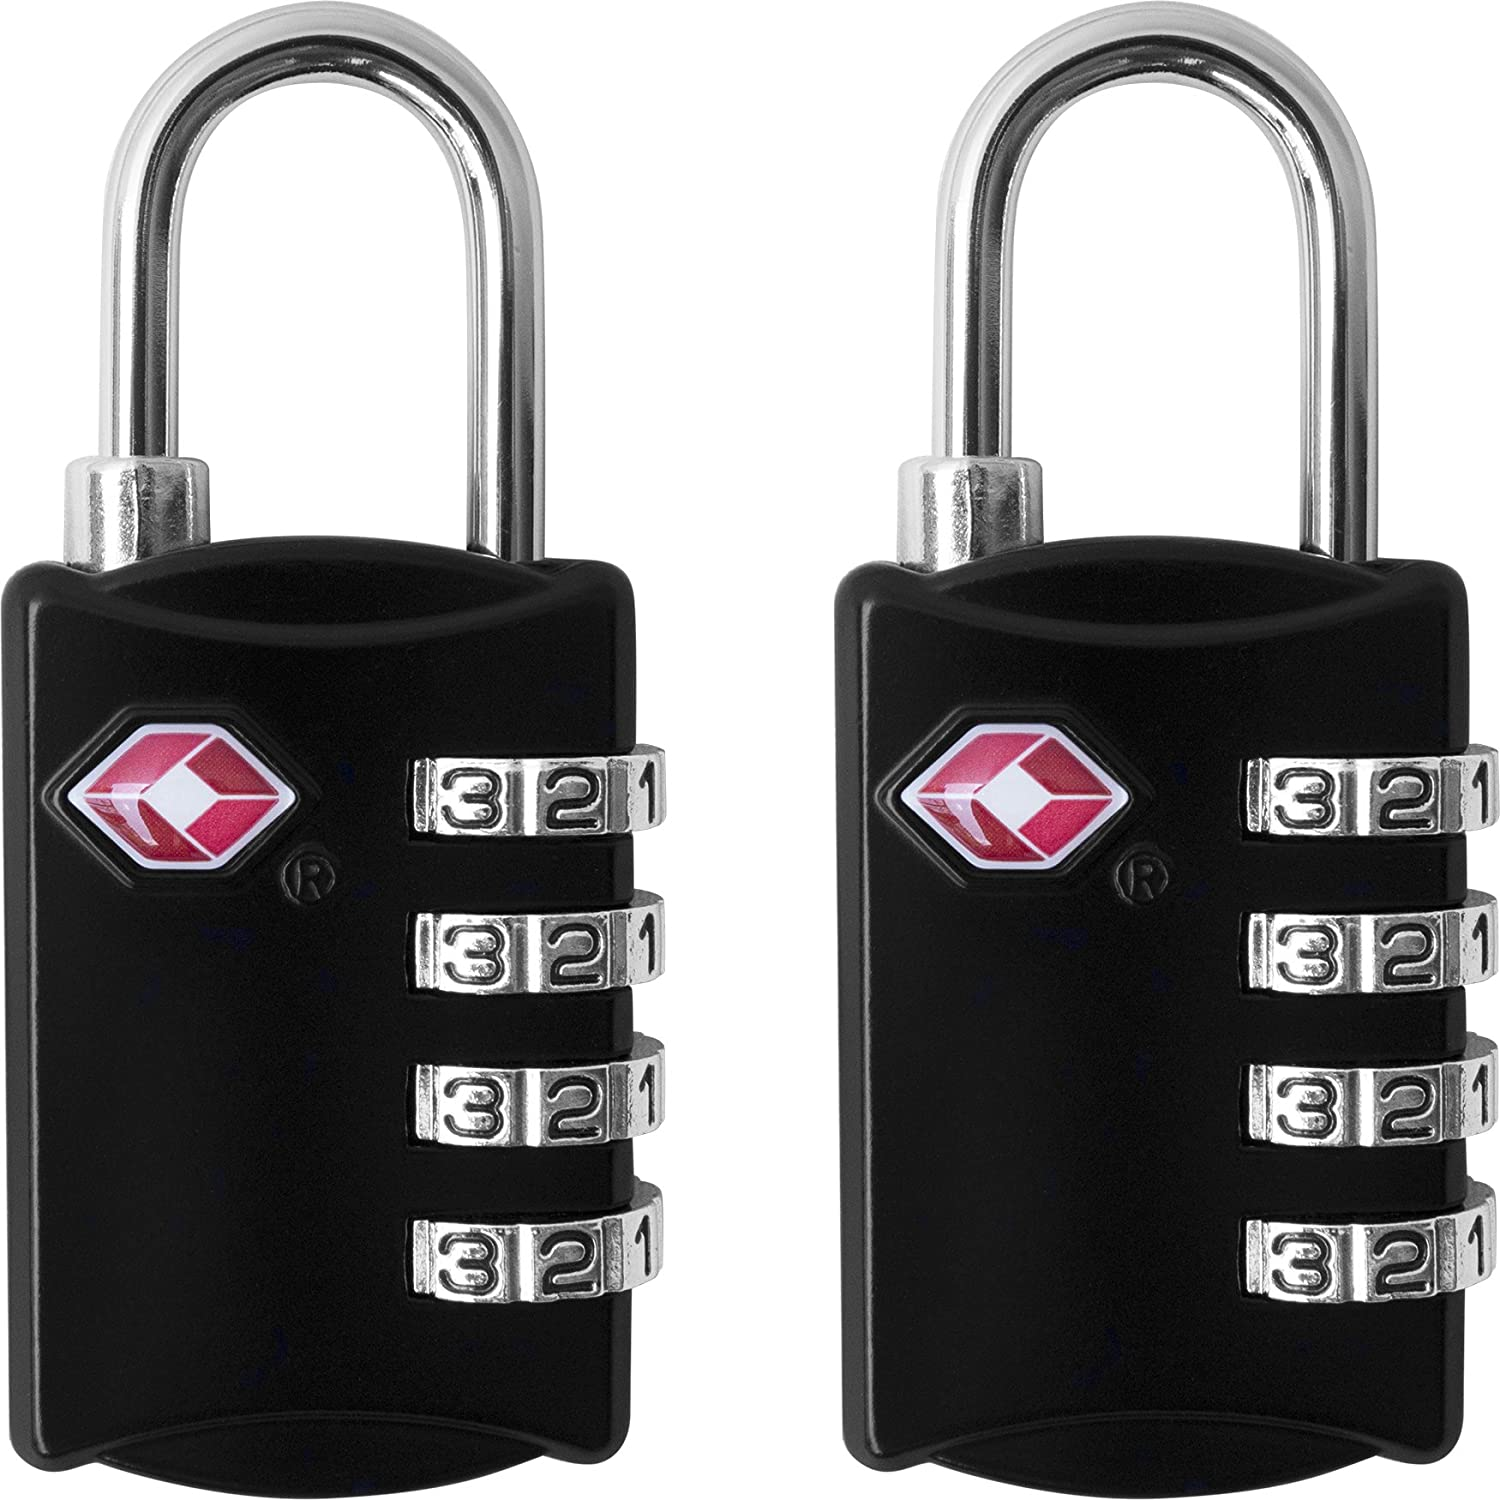 TSA Luggage Locks (2 Pack) - 4 Digit Combination Steel Padlocks - Approved Travel Lock for Suitcases & Baggage - Green desired tools